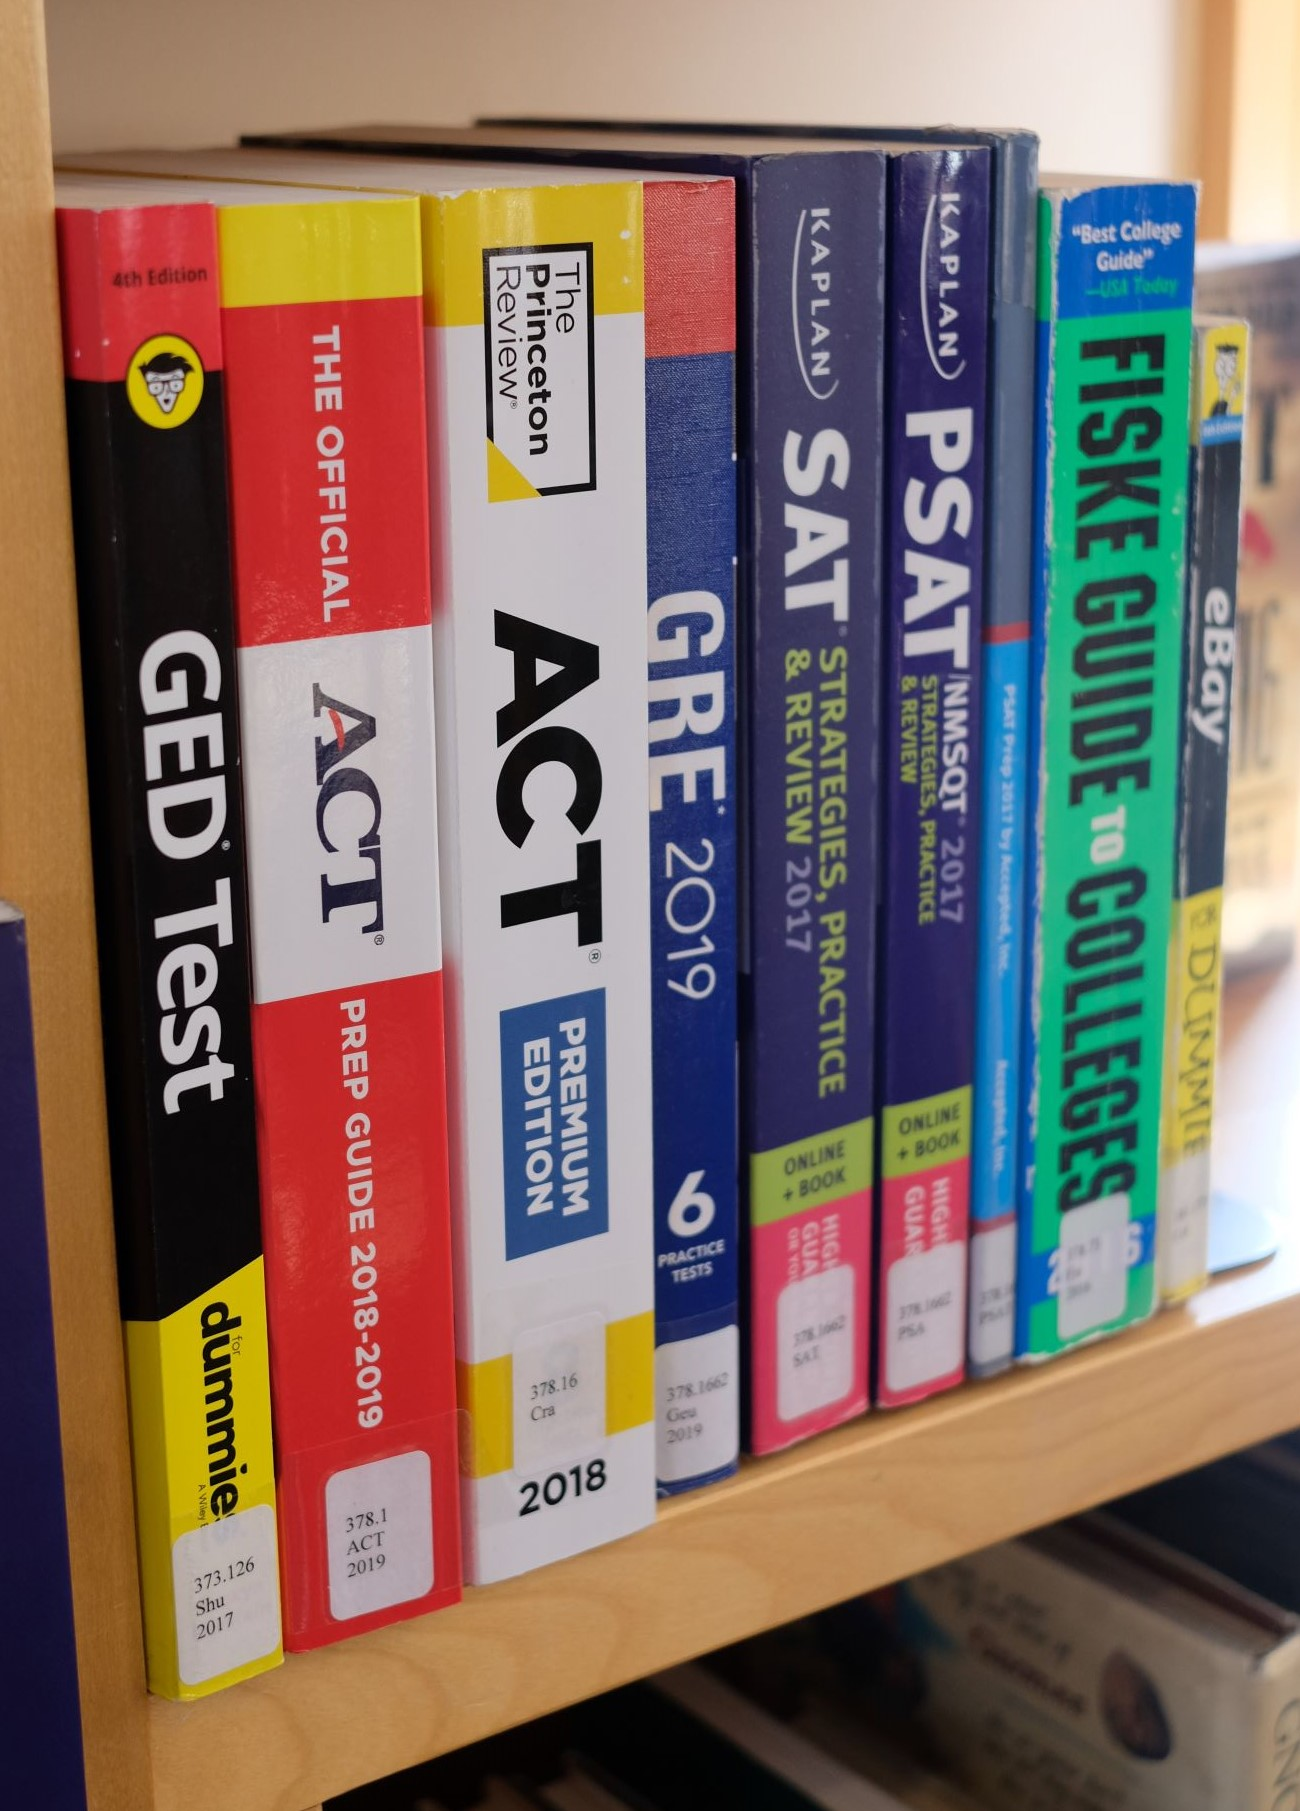 SAT Prep books on the shelf at the Crested Butte Library